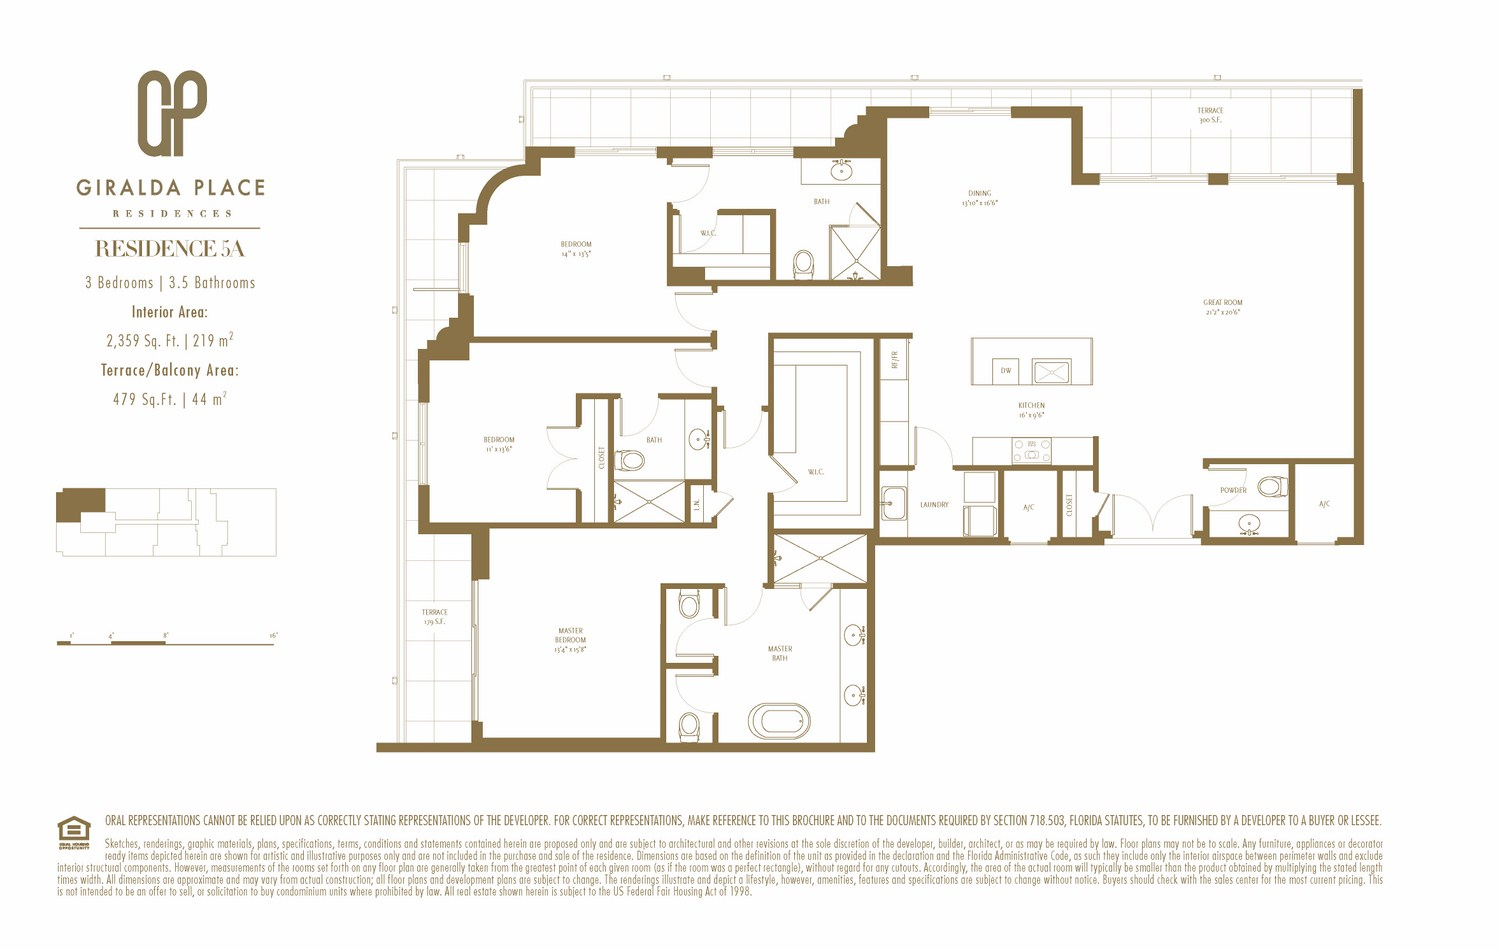 Giralda Place - Floorplan 4